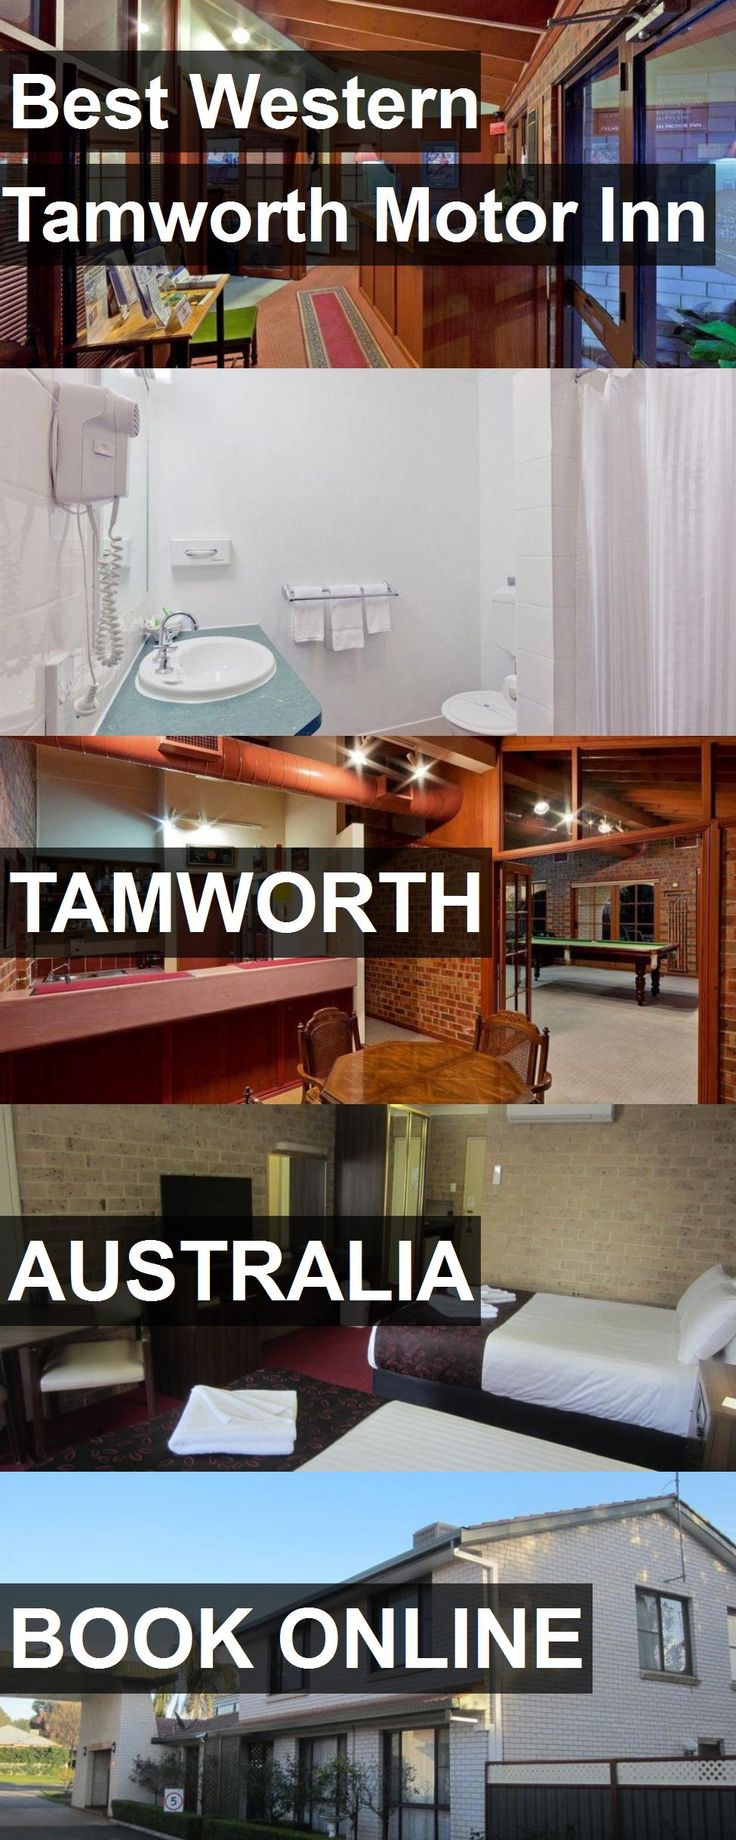 Hotel Best Western Tamworth Motor Inn in Tamworth, Australia. For more information, photos, reviews and best prices please follow the link. #Australia #Tamworth #travel #vacation #hotel